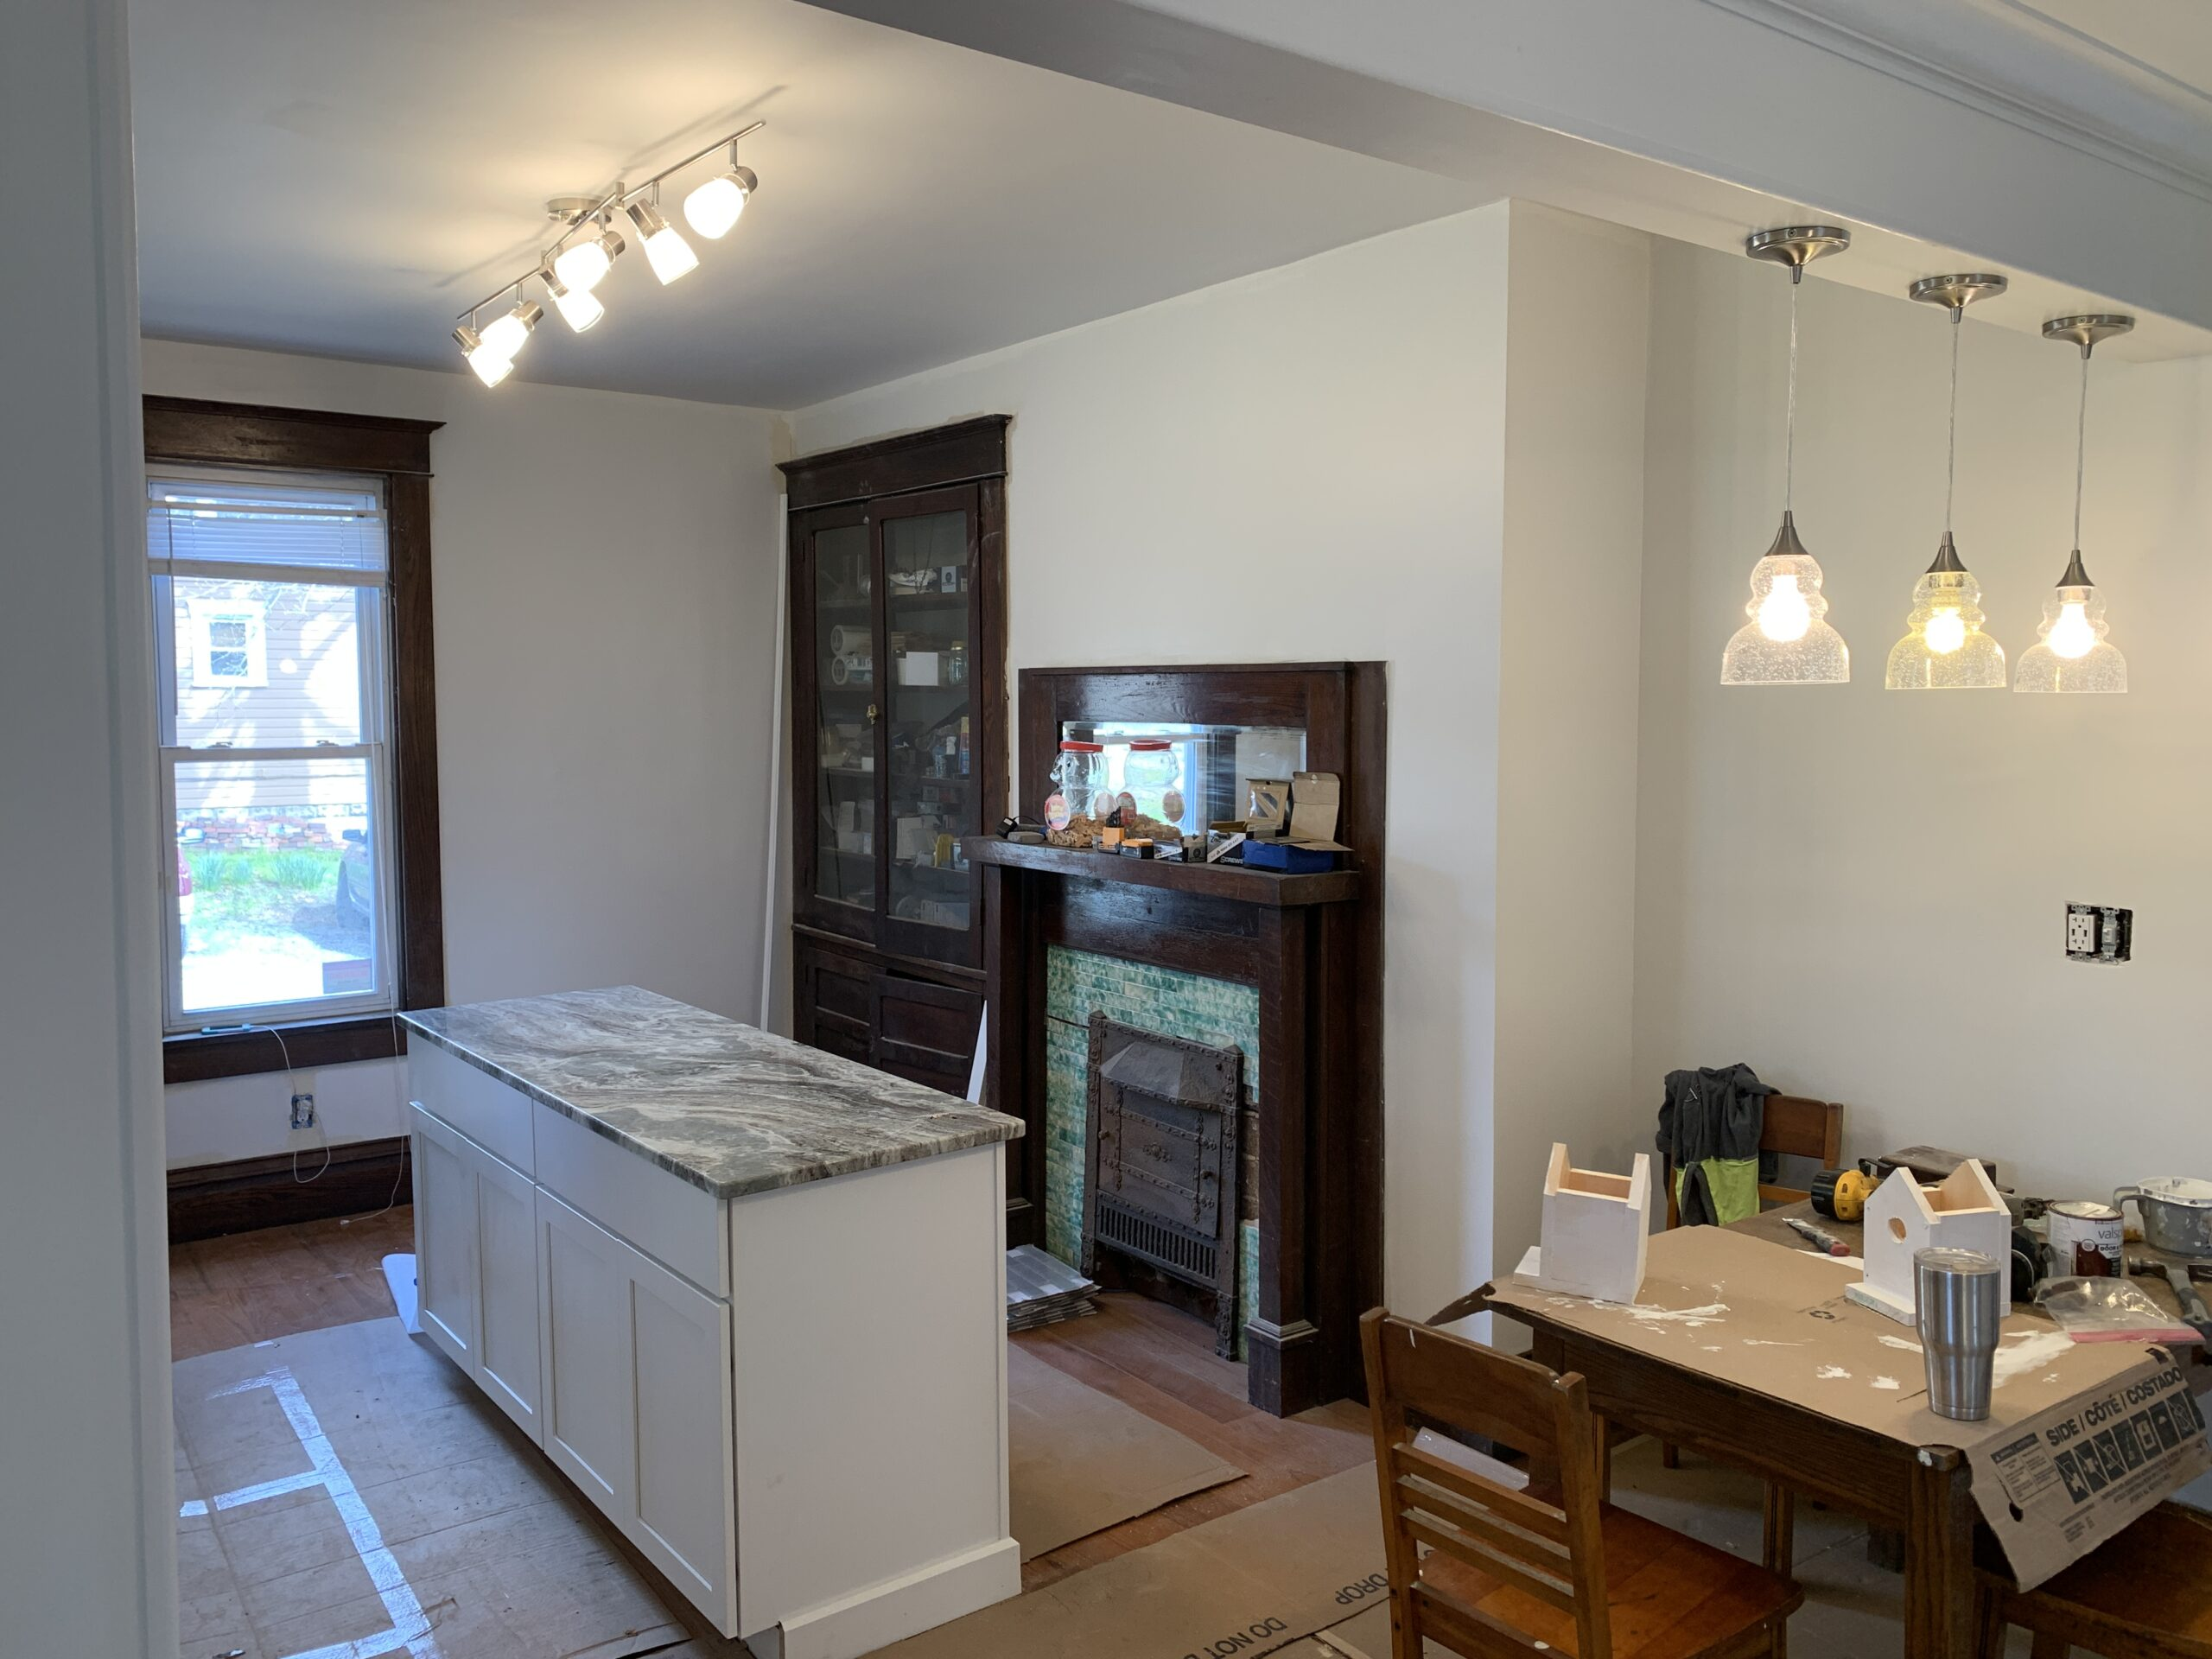 fireplace and counter